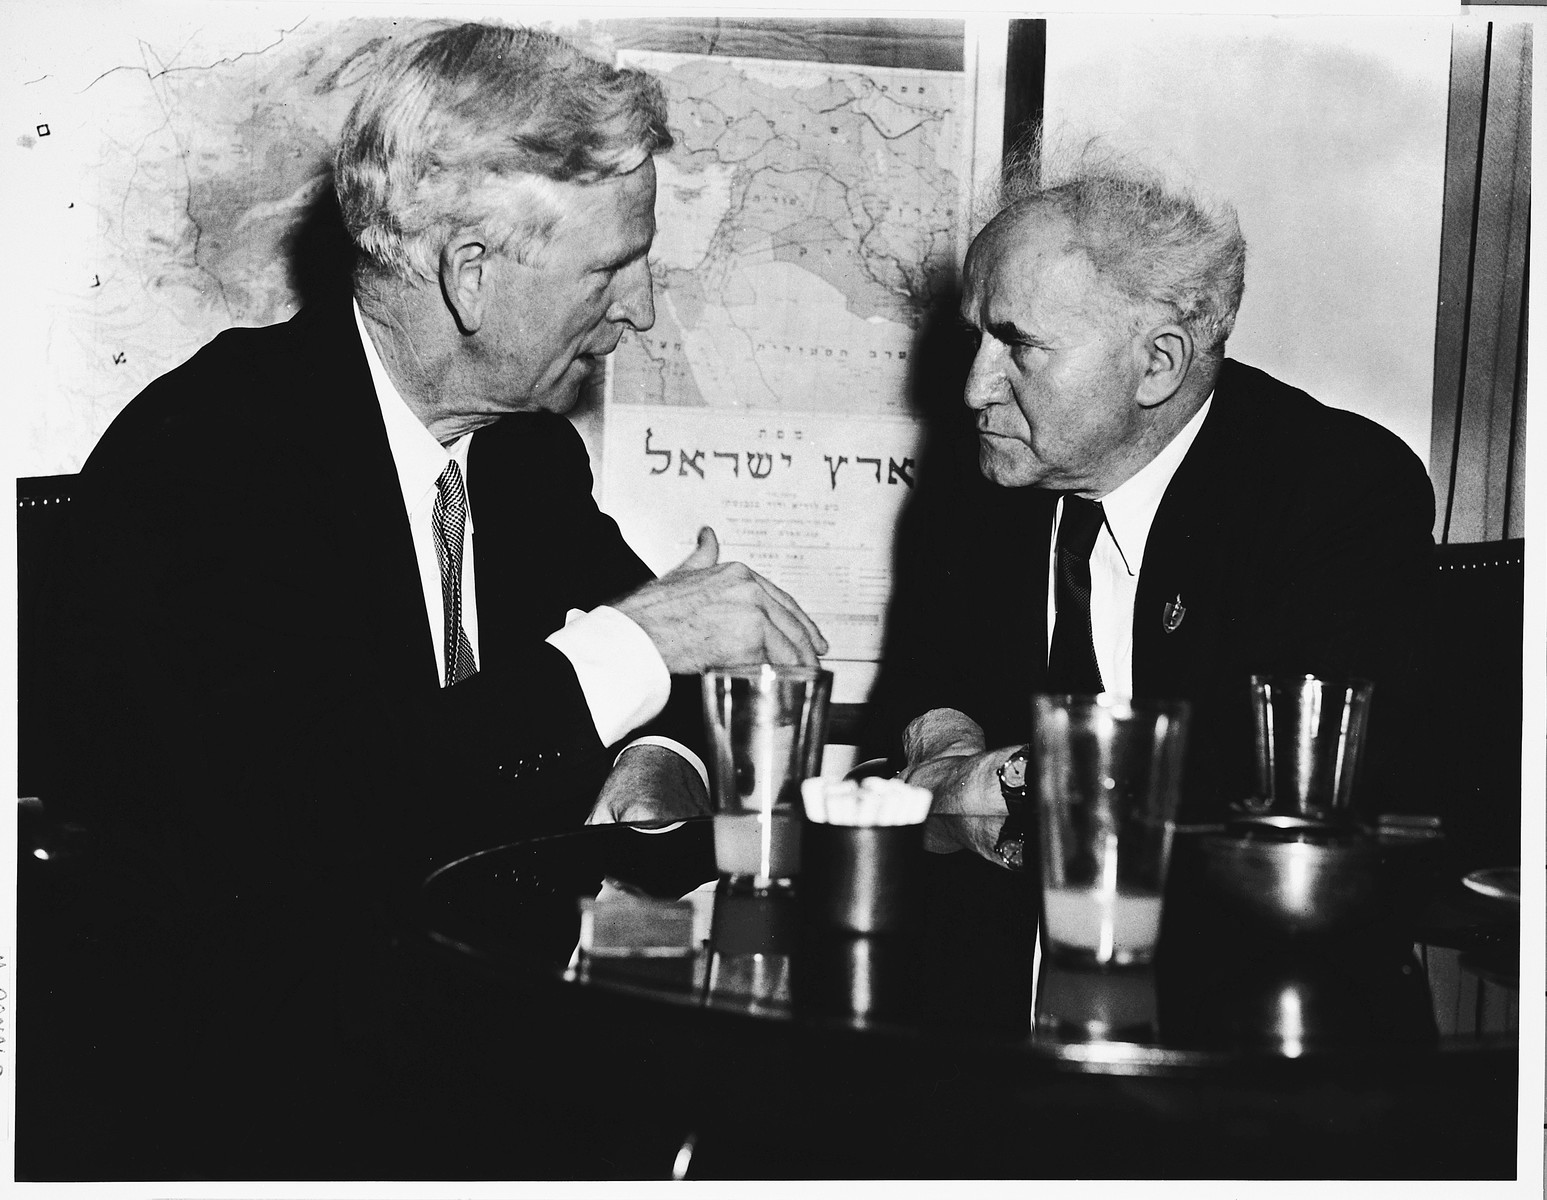 U.S. Special Representative to Israel, James McDonald, in a private meeting with Israeli Prime Minister, David Ben-Gurion after presenting his credentials.